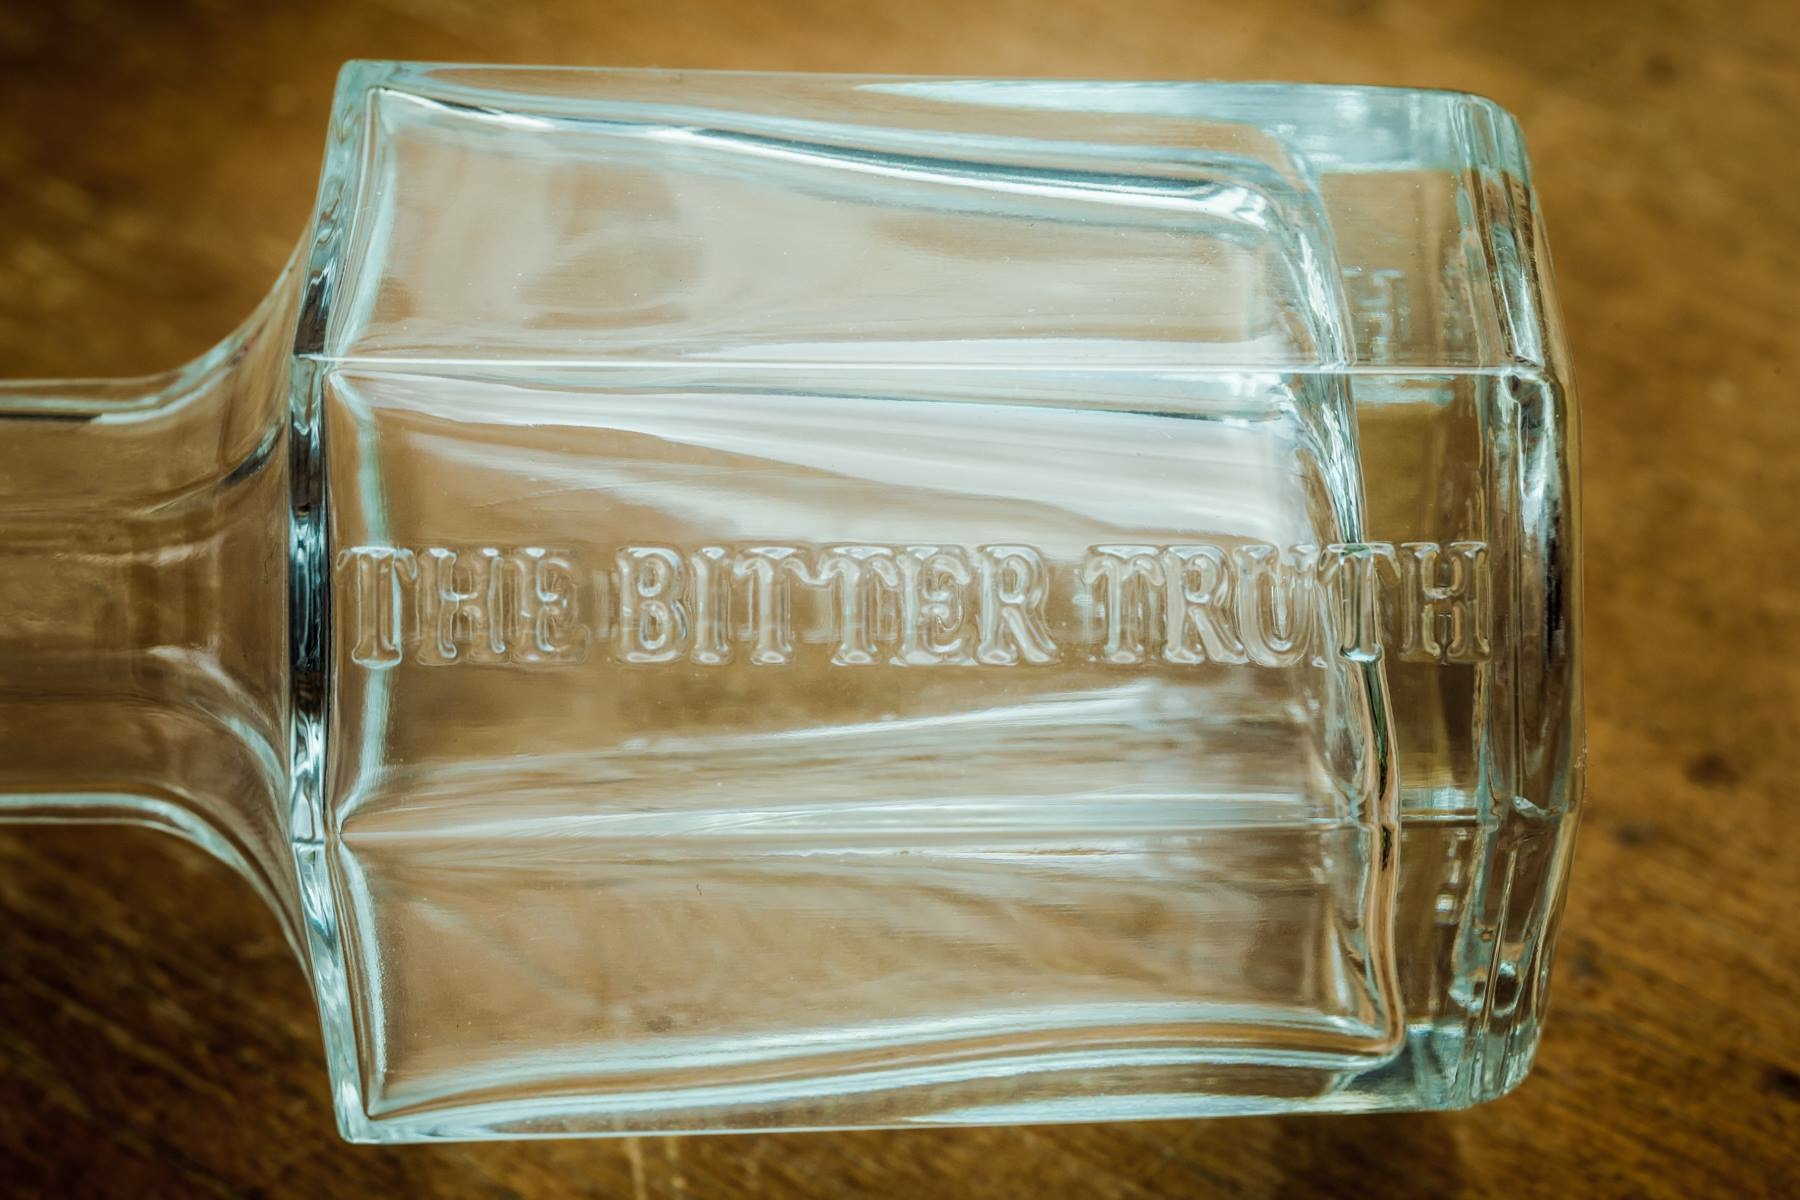 The Bitter Truth 10th anniversary decanter